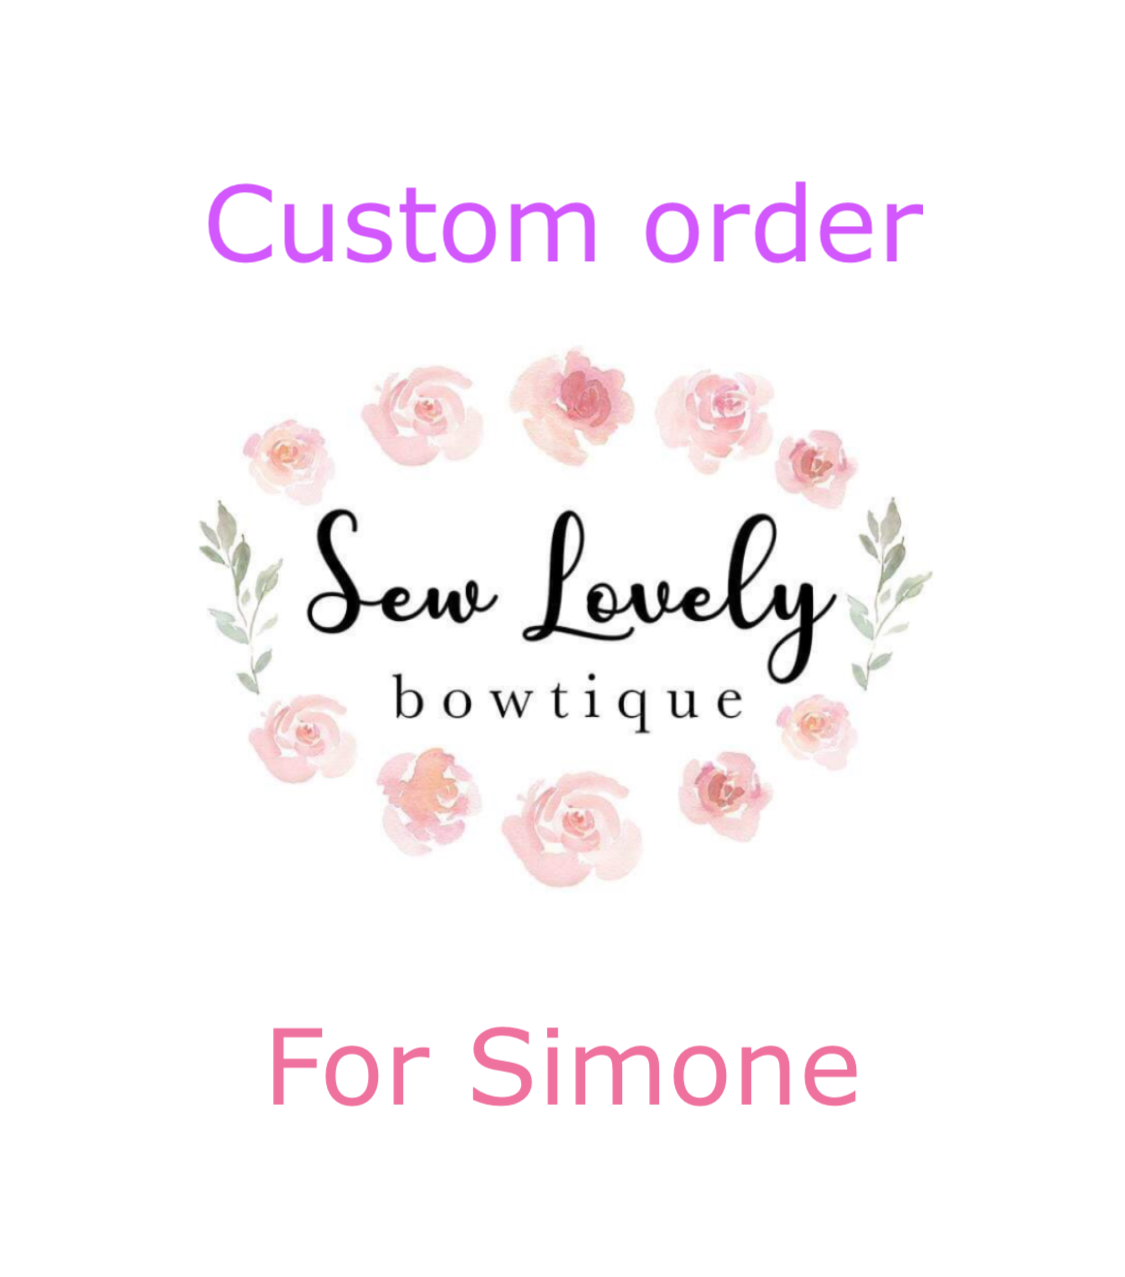 Custom Order for Simone